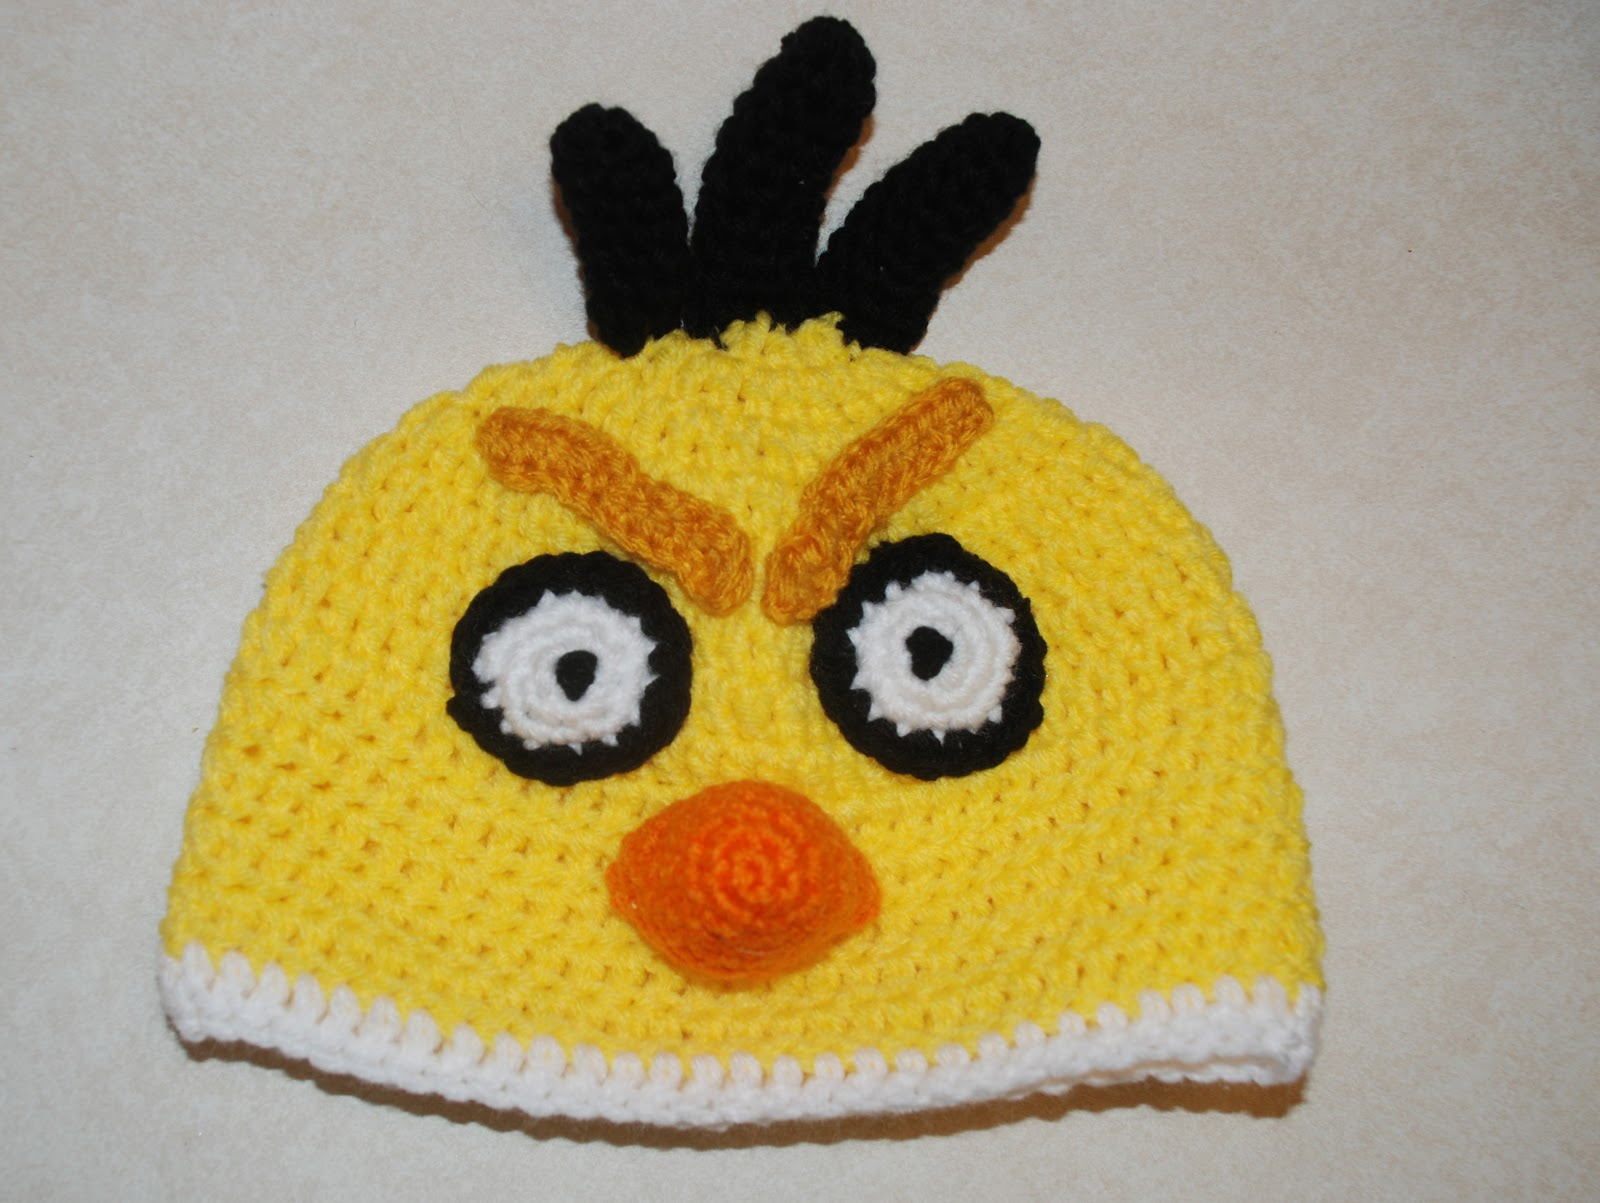 Crochet Hat Pattern Angry Bird : Amys Crochet Creative Creations: Crochet Angry Yellow ...